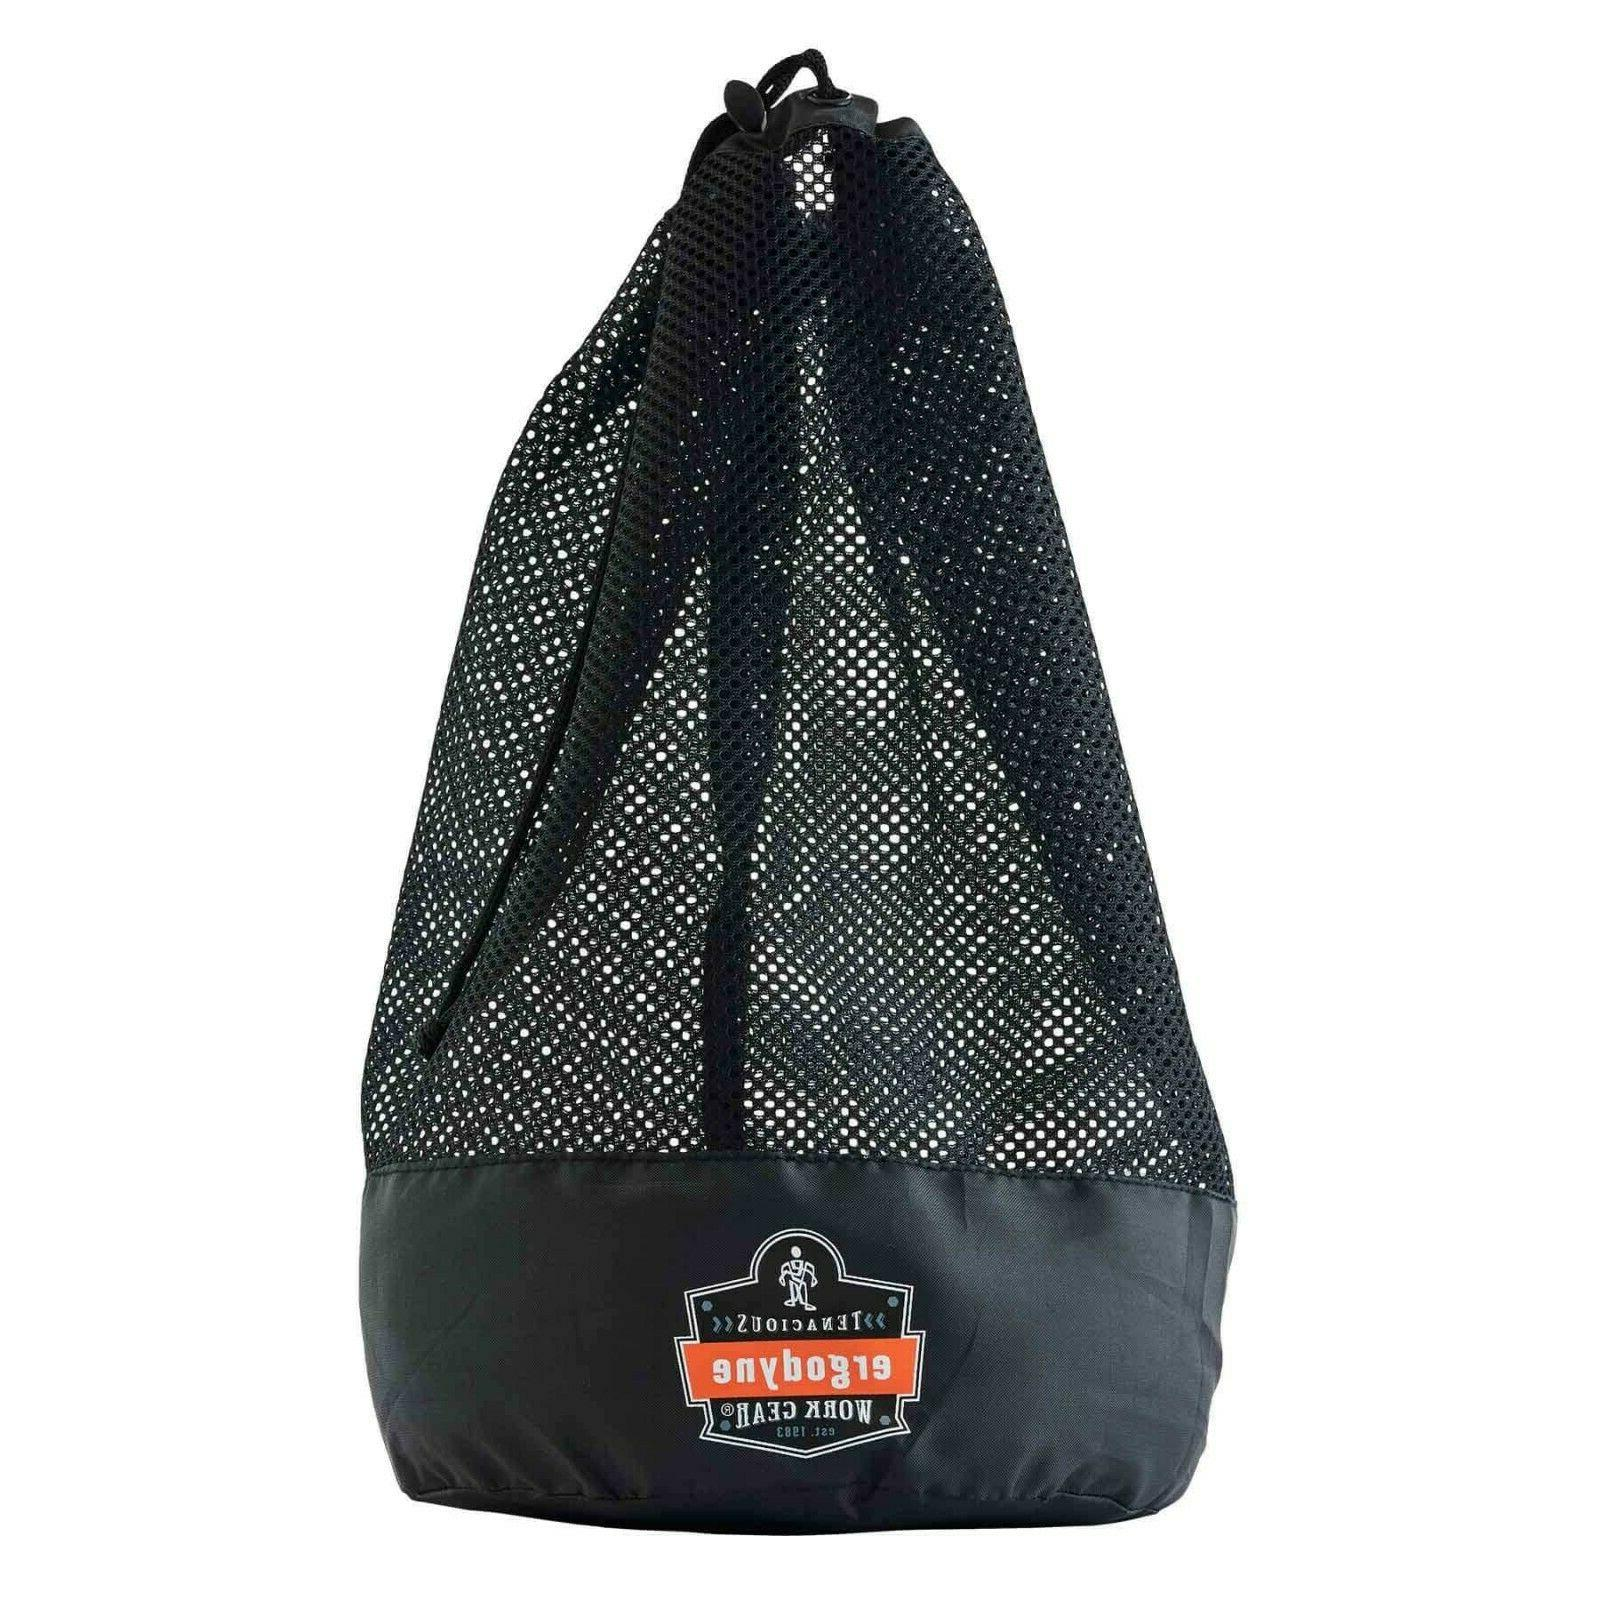 mesh drawstring bag black new fast shipping